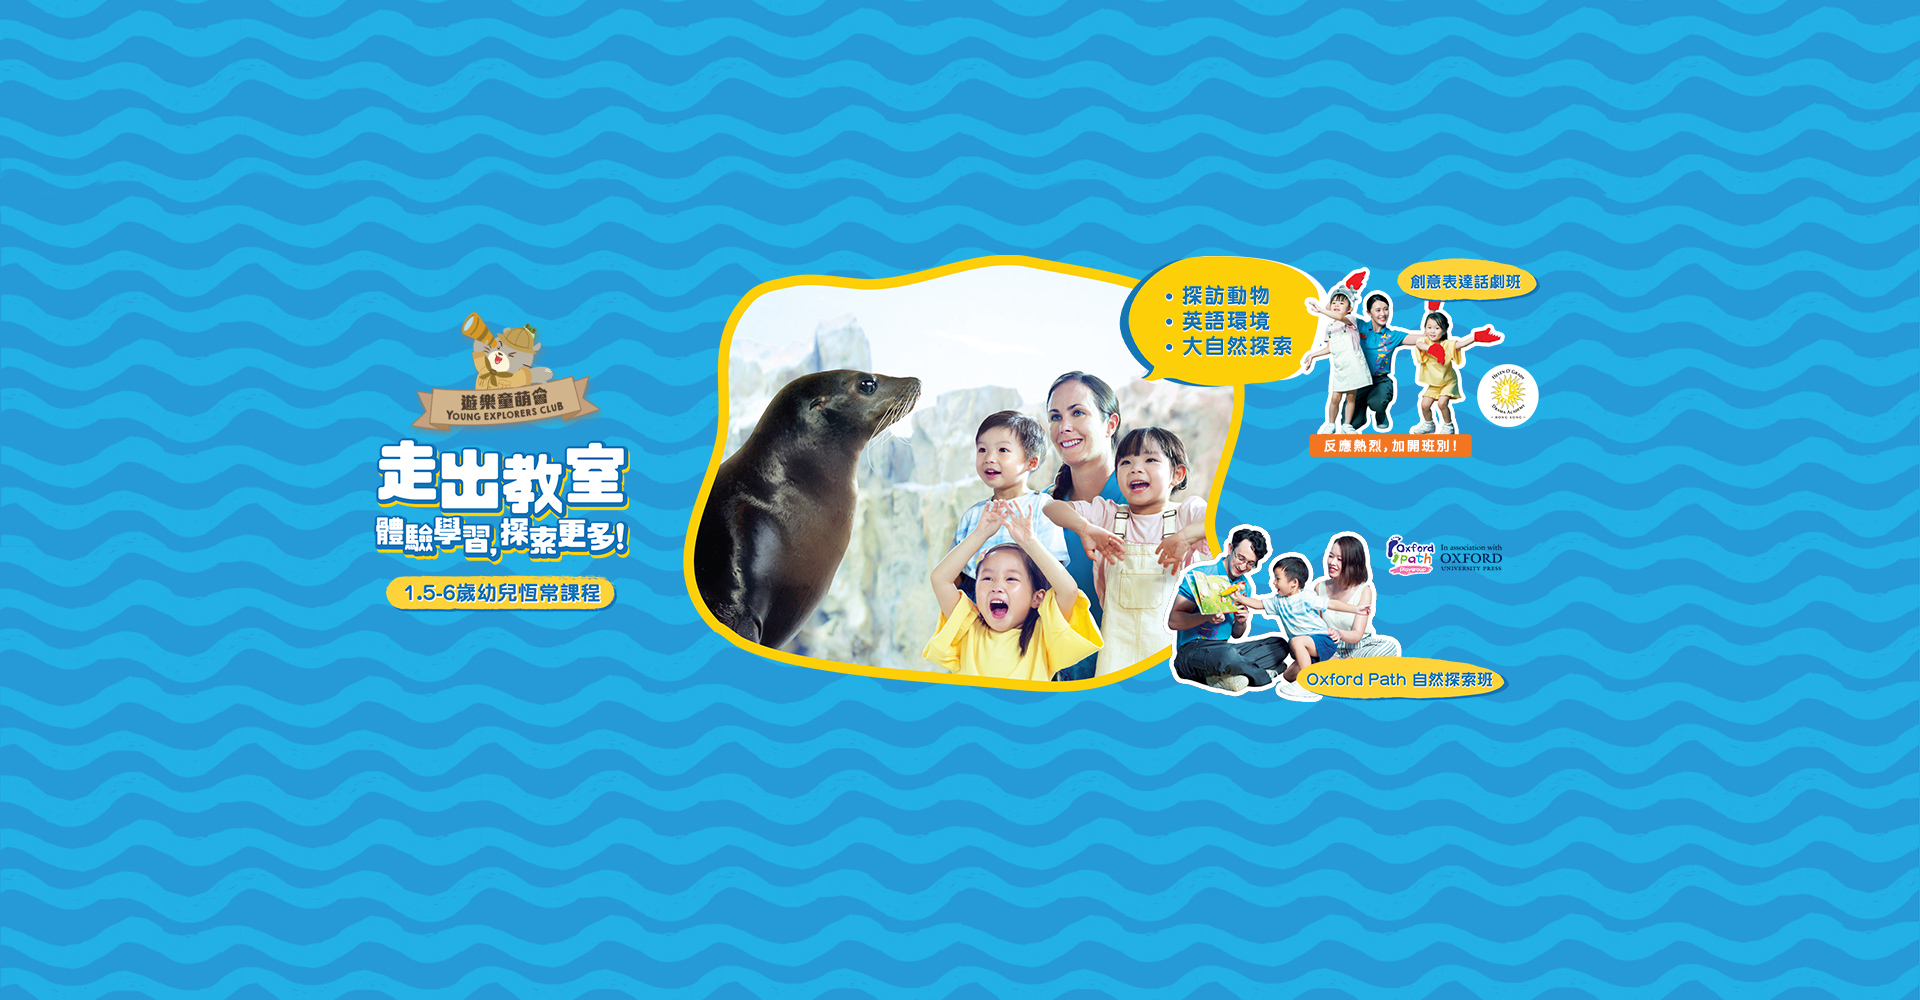 https://media.oceanpark.cn/files/s3fs-public/inside_banner01_desktop-2.jpg